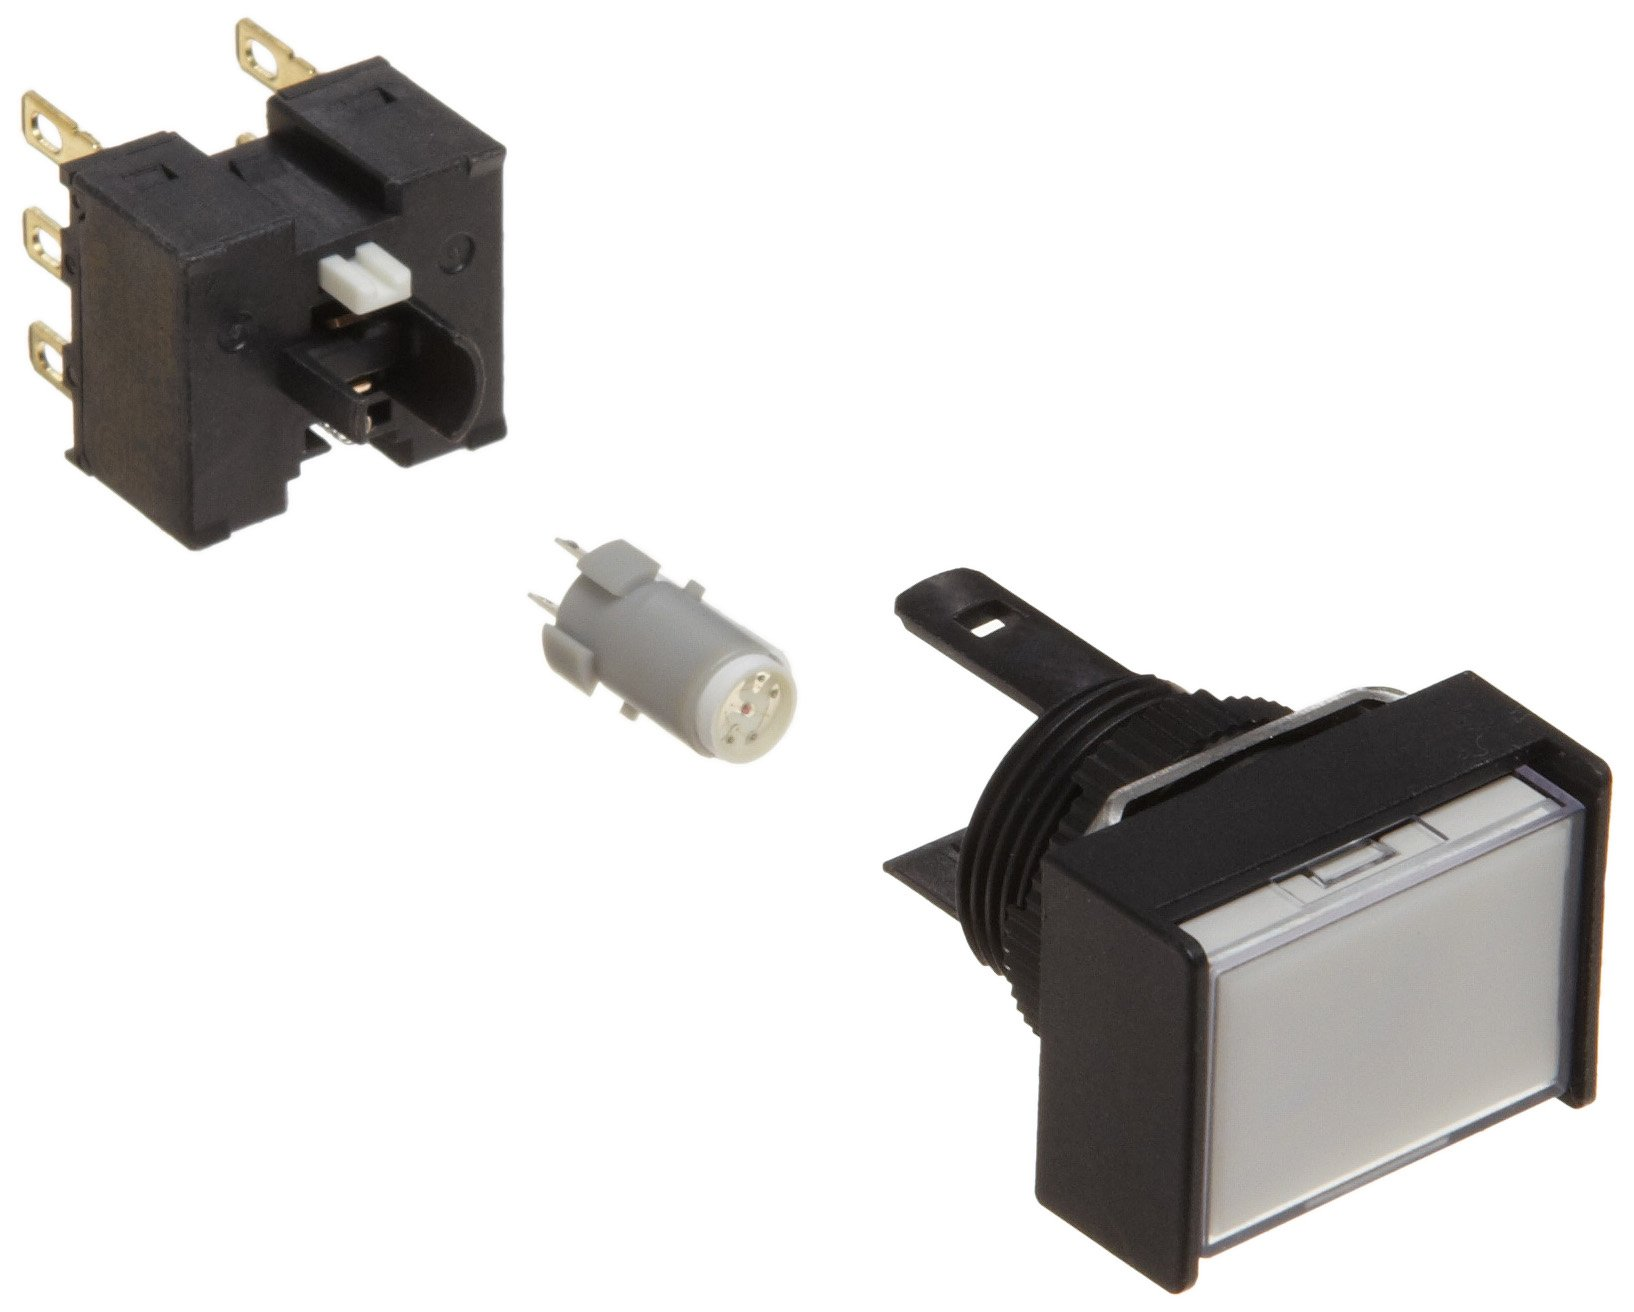 Omron A165L-JWA-24D-2 Two Way Guard Type Pushbutton and Switch, Solder Terminal, IP65 Oil-Resistant, 16mm Mounting Aperture, LED Lighted, Alternate Operation, Rectangular, White, 24 VDC Rated Voltage, Double Pole Double Throw Contacts